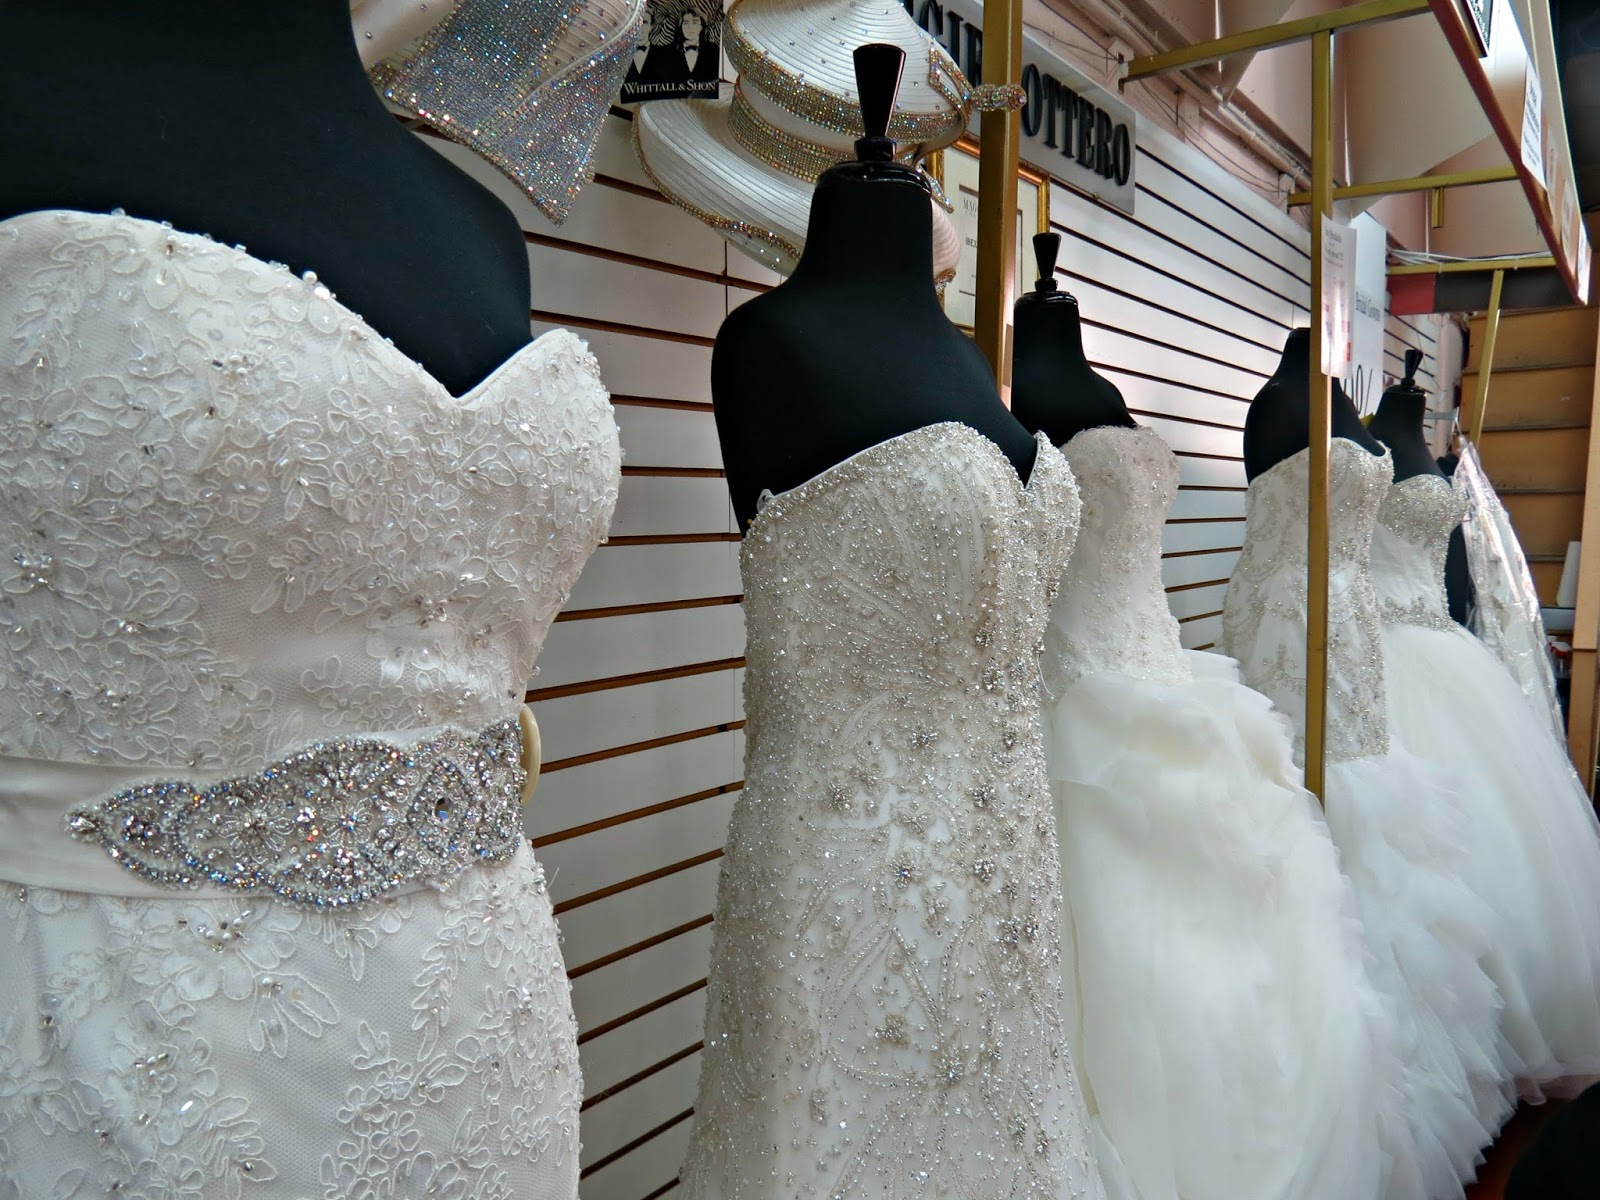 Wedding Dresses In Los Angeles Garment District - Wedding Dresses In ...